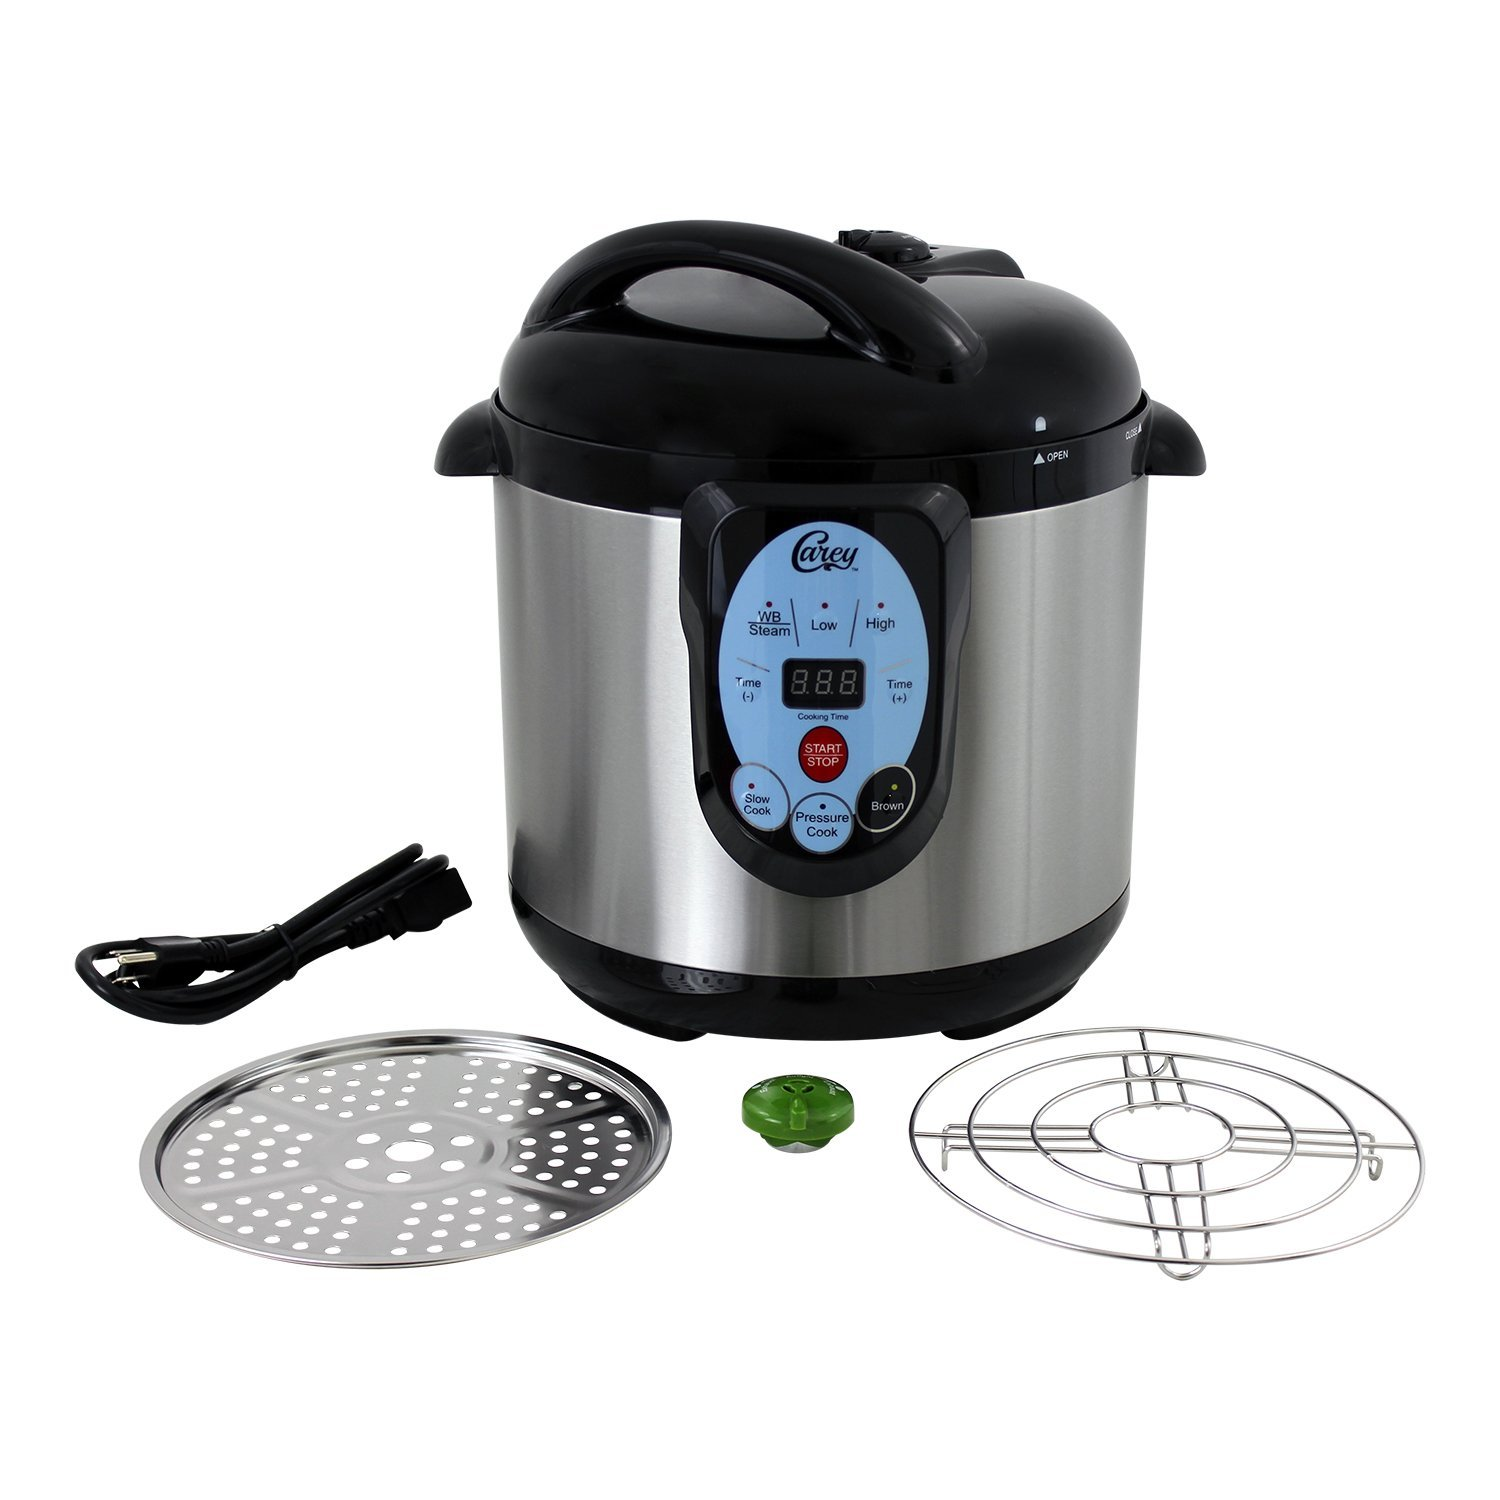 Carey Smart Digital Pressure 9.5 Qt Slow Steam Cooker & Canner Kitchen Appliance